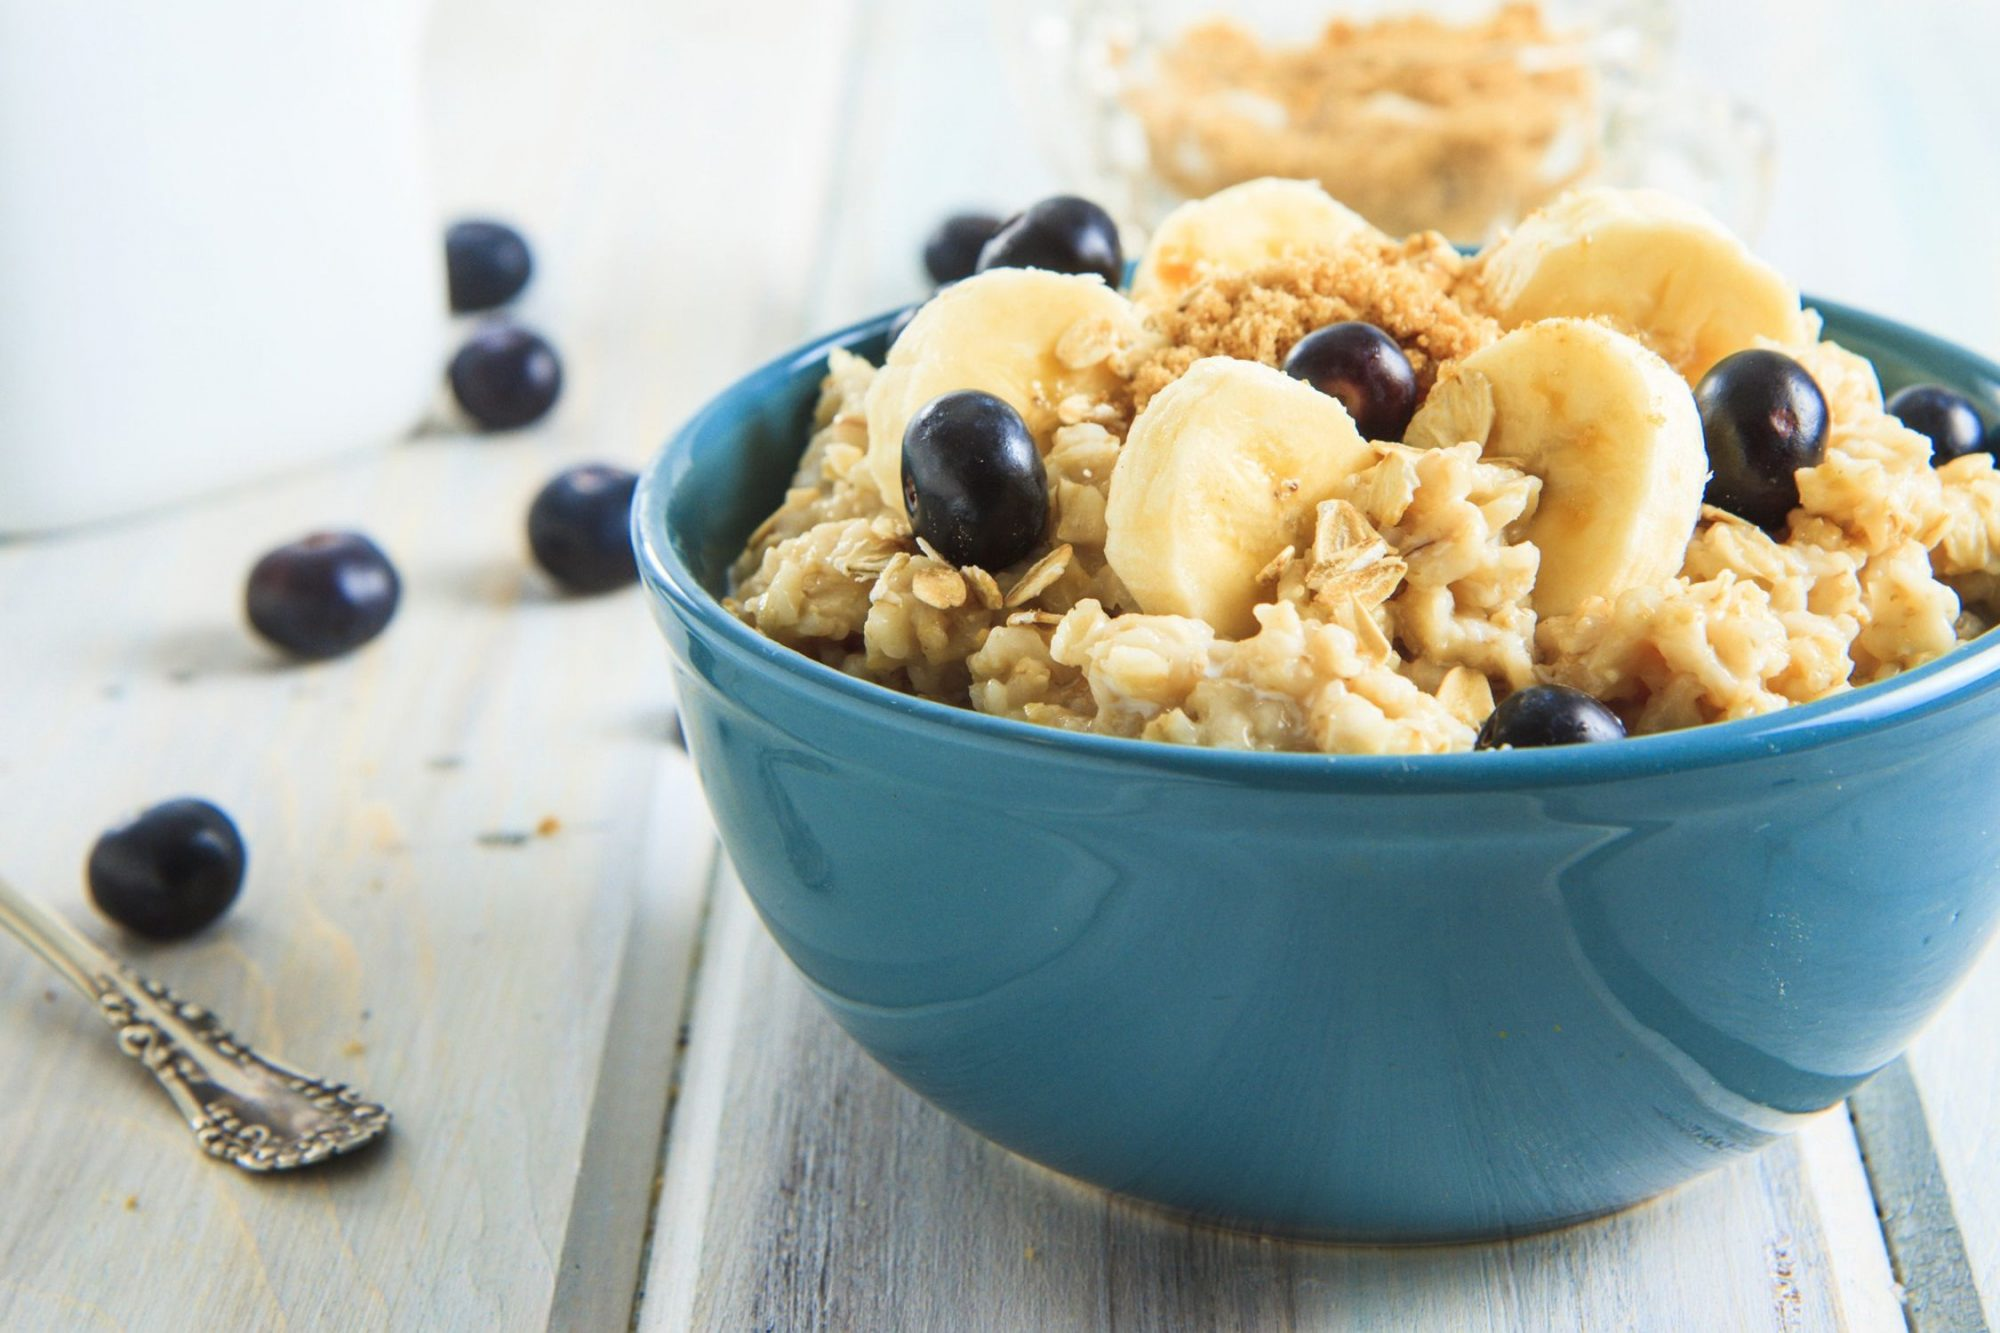 EC: The Simple Trick That Will Make Your Oatmeal So Much Better